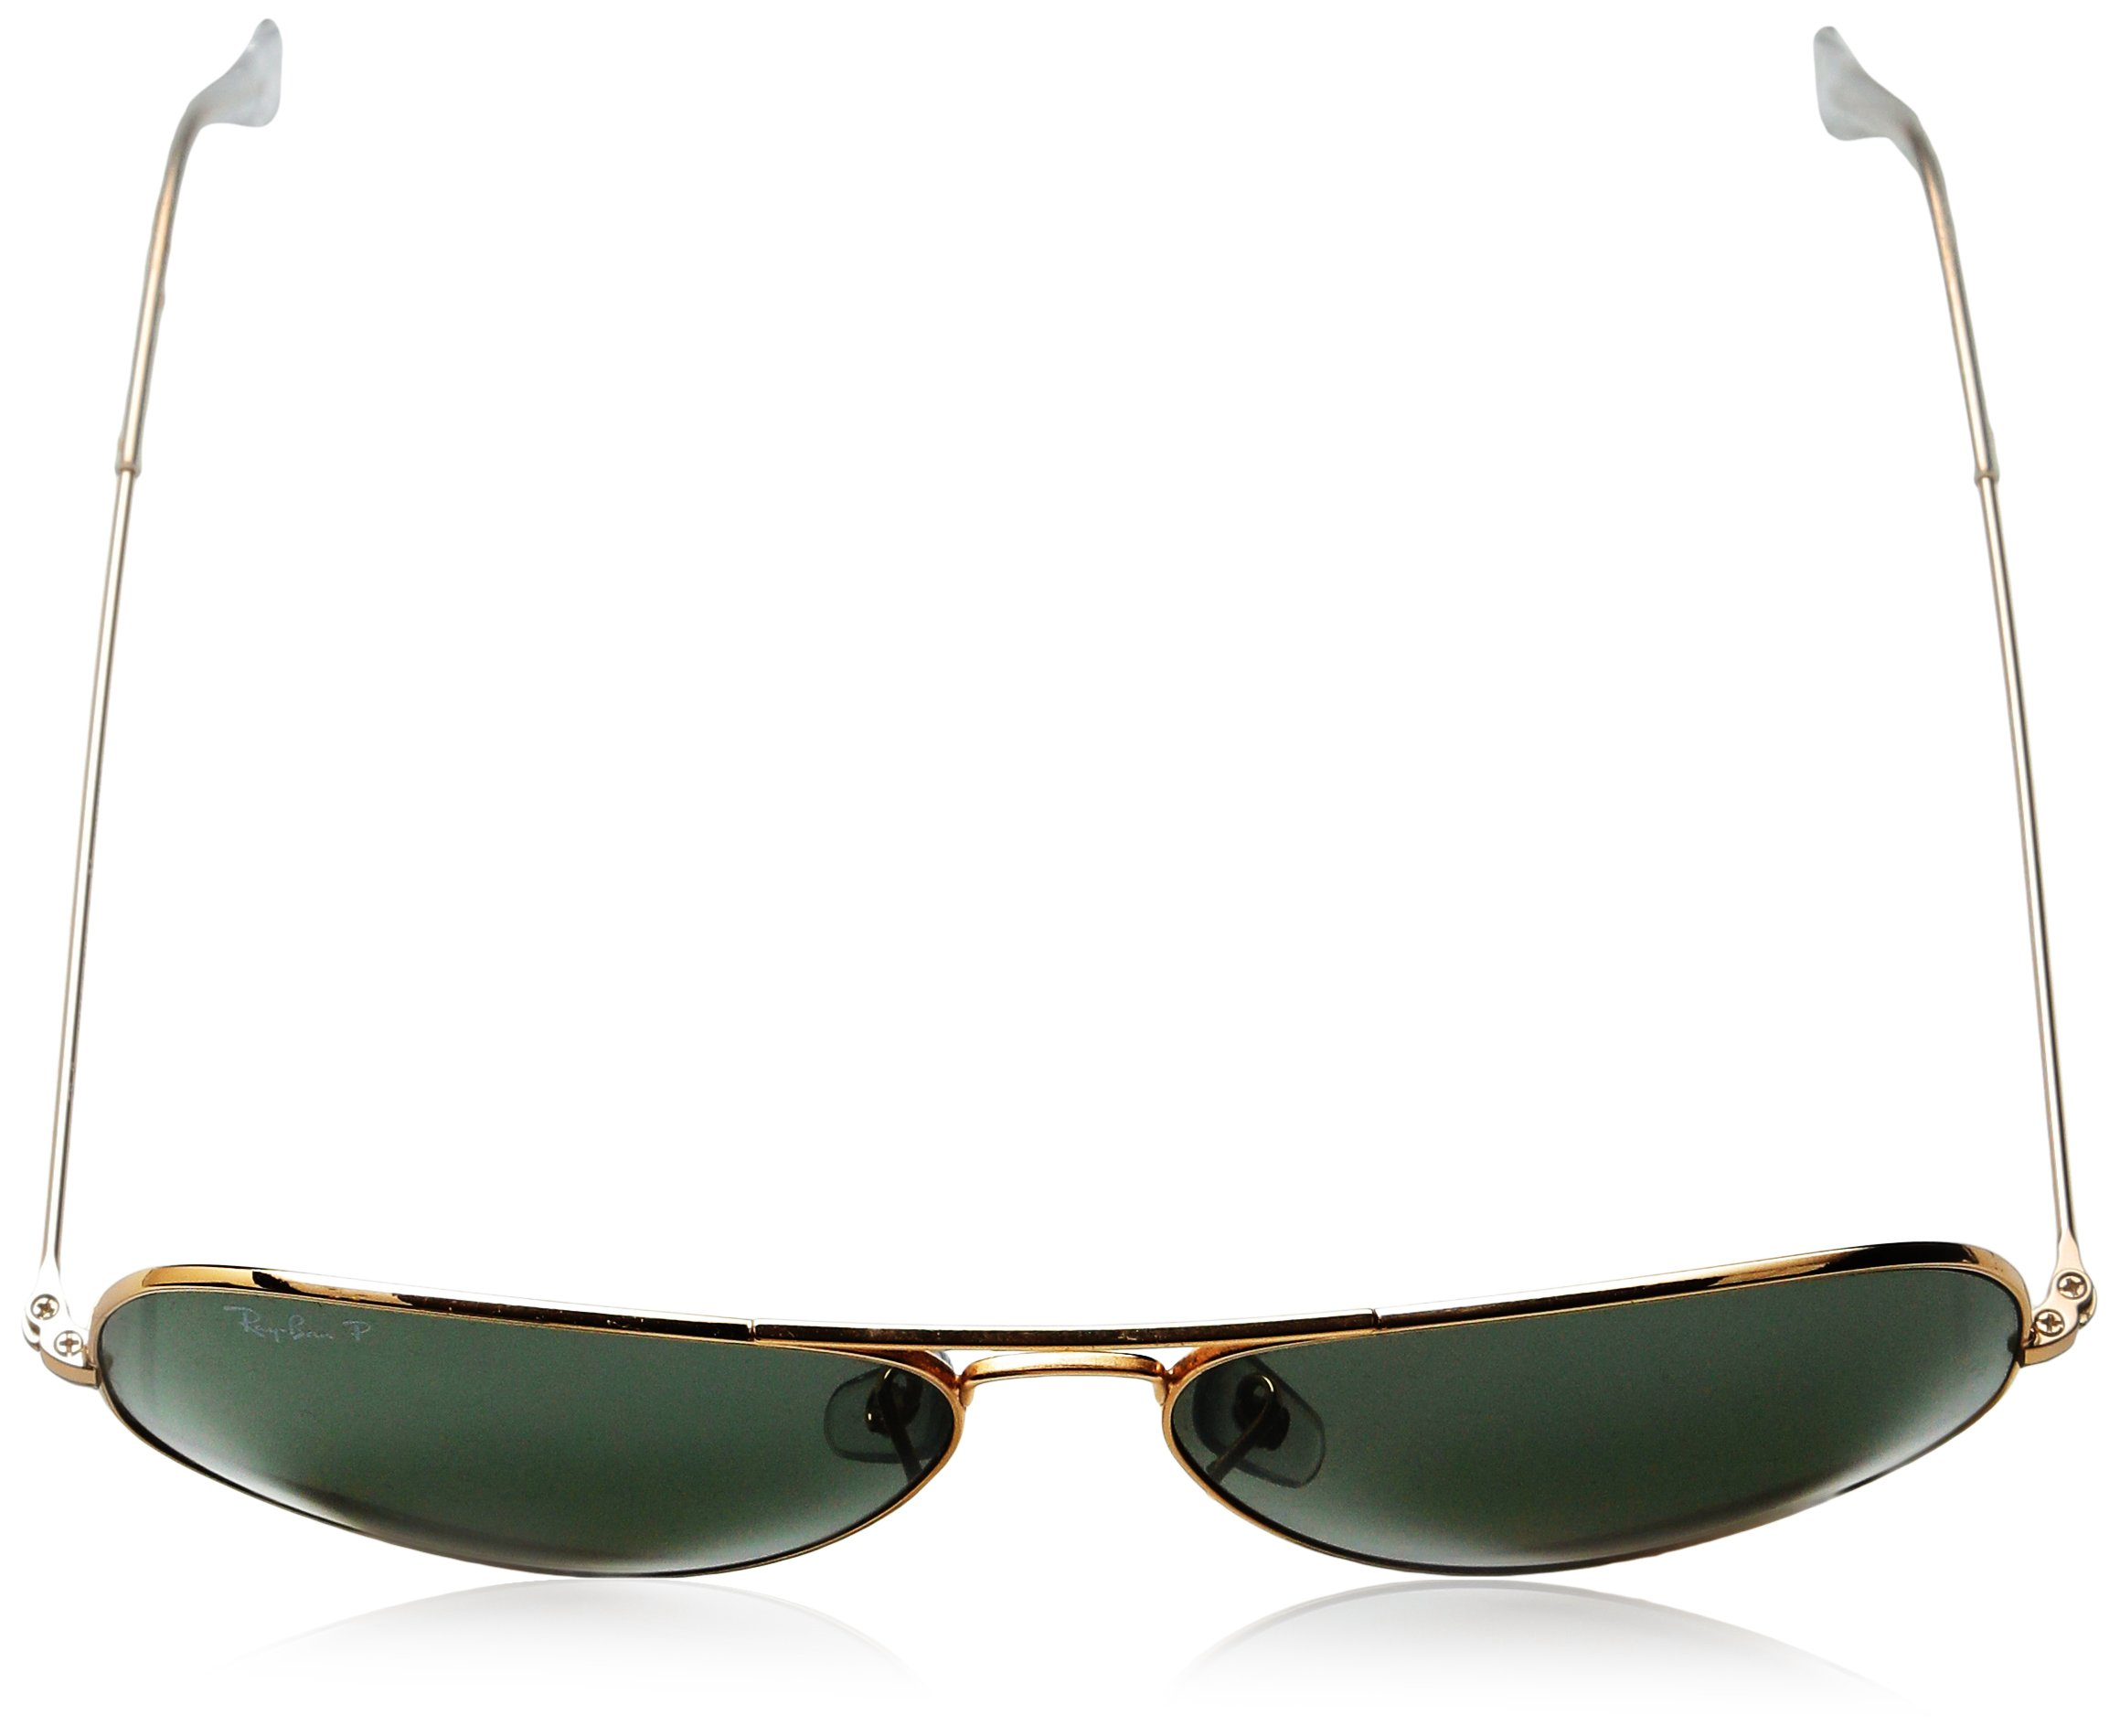 Ray-Ban 3025 Aviator Large Metal Non-Mirrored Polarized Sunglasses, Gold/Green, 62mm by Ray-Ban (Image #4)